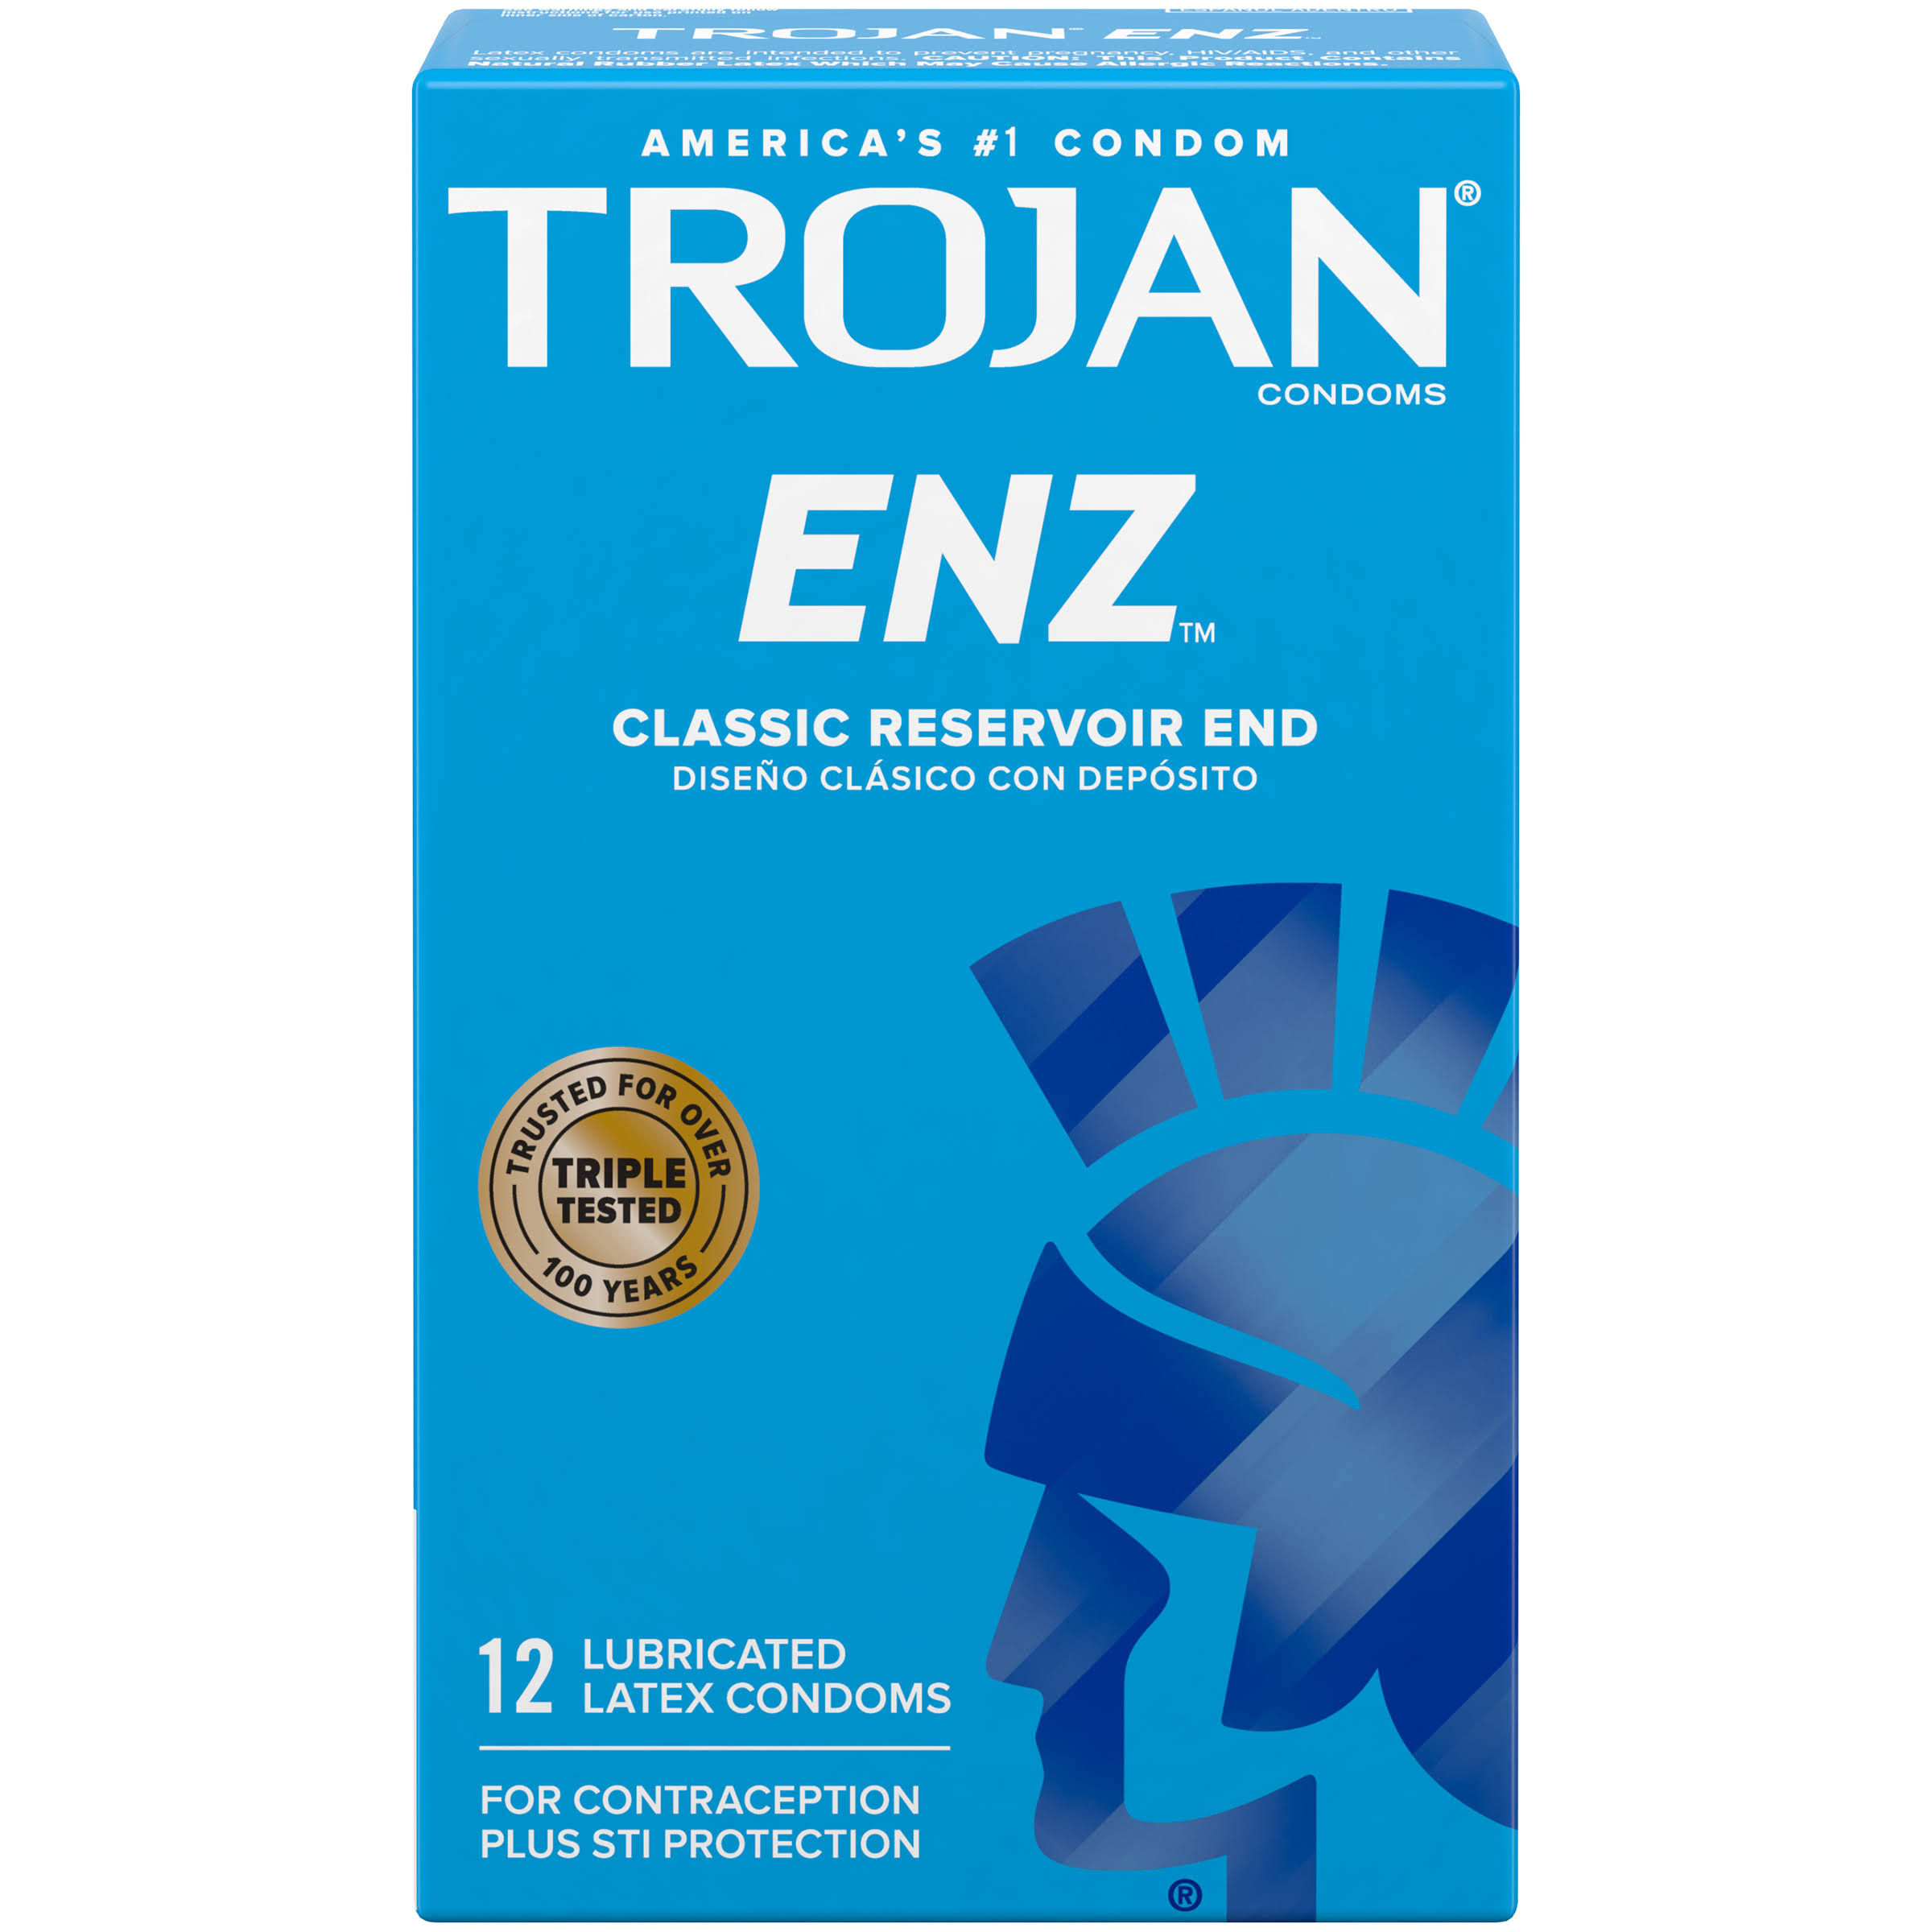 Trojan ENZ Lubricated Latex Condoms - 12 Count